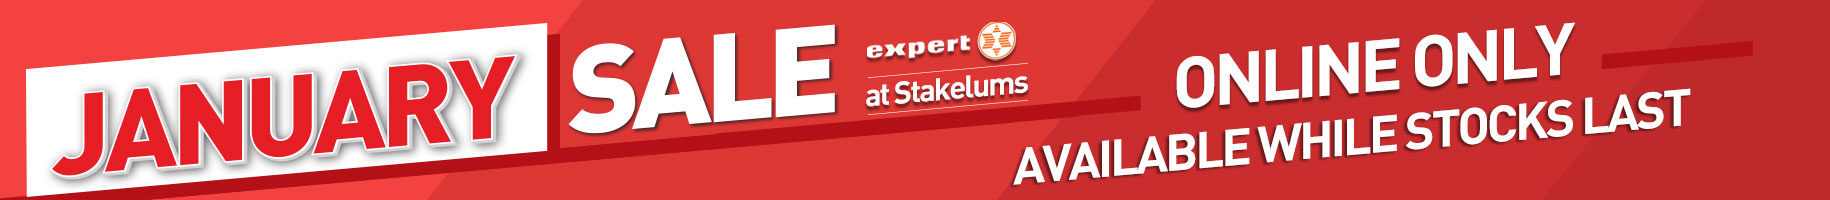 January Sale Now online at Stakelum.ie - Only available online